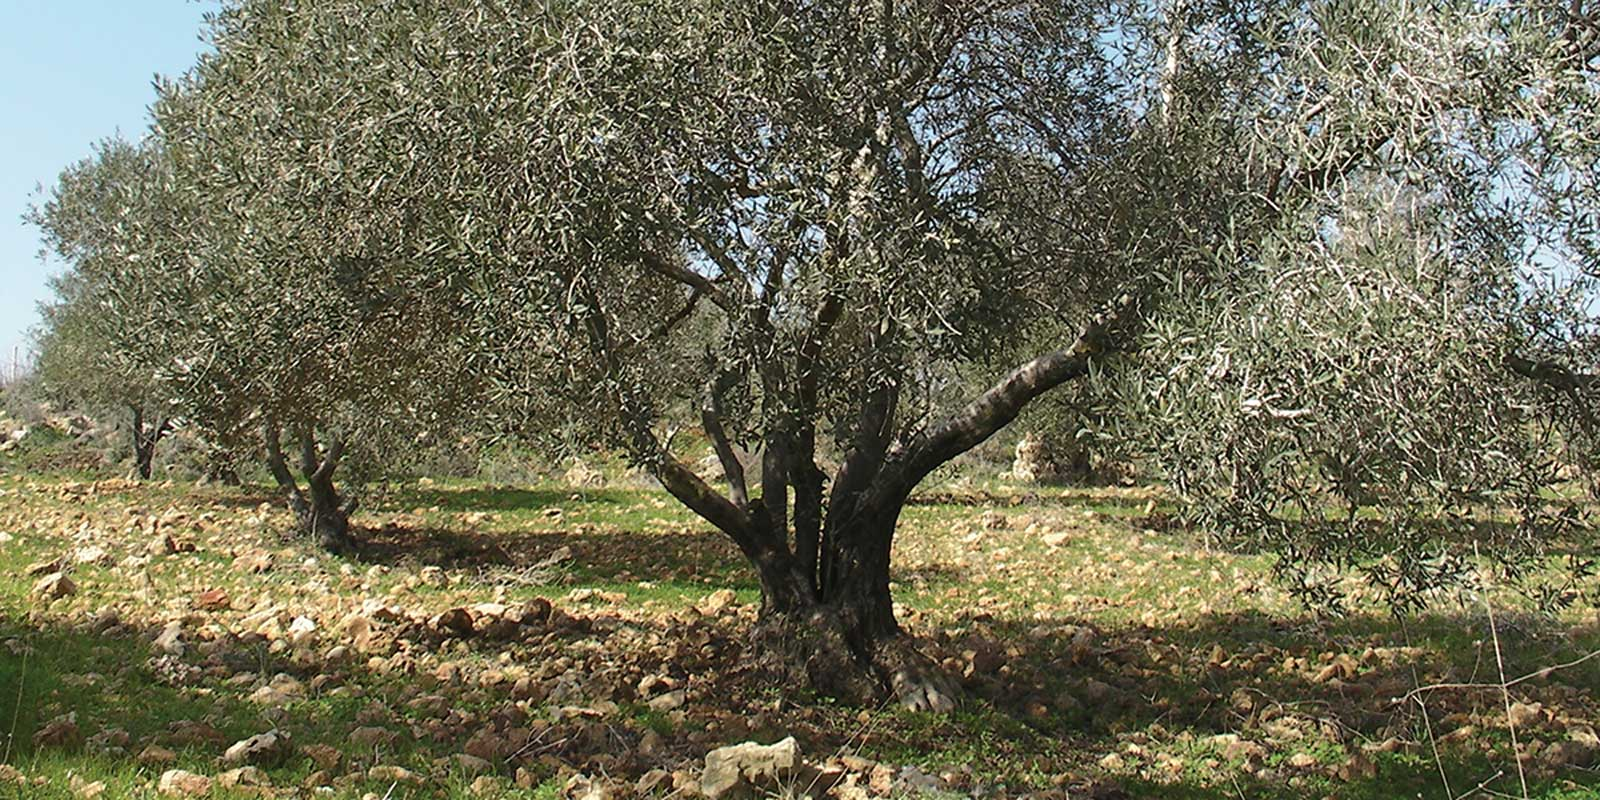 Olive trees in the village of Anin. Credit: The Oakland Institute